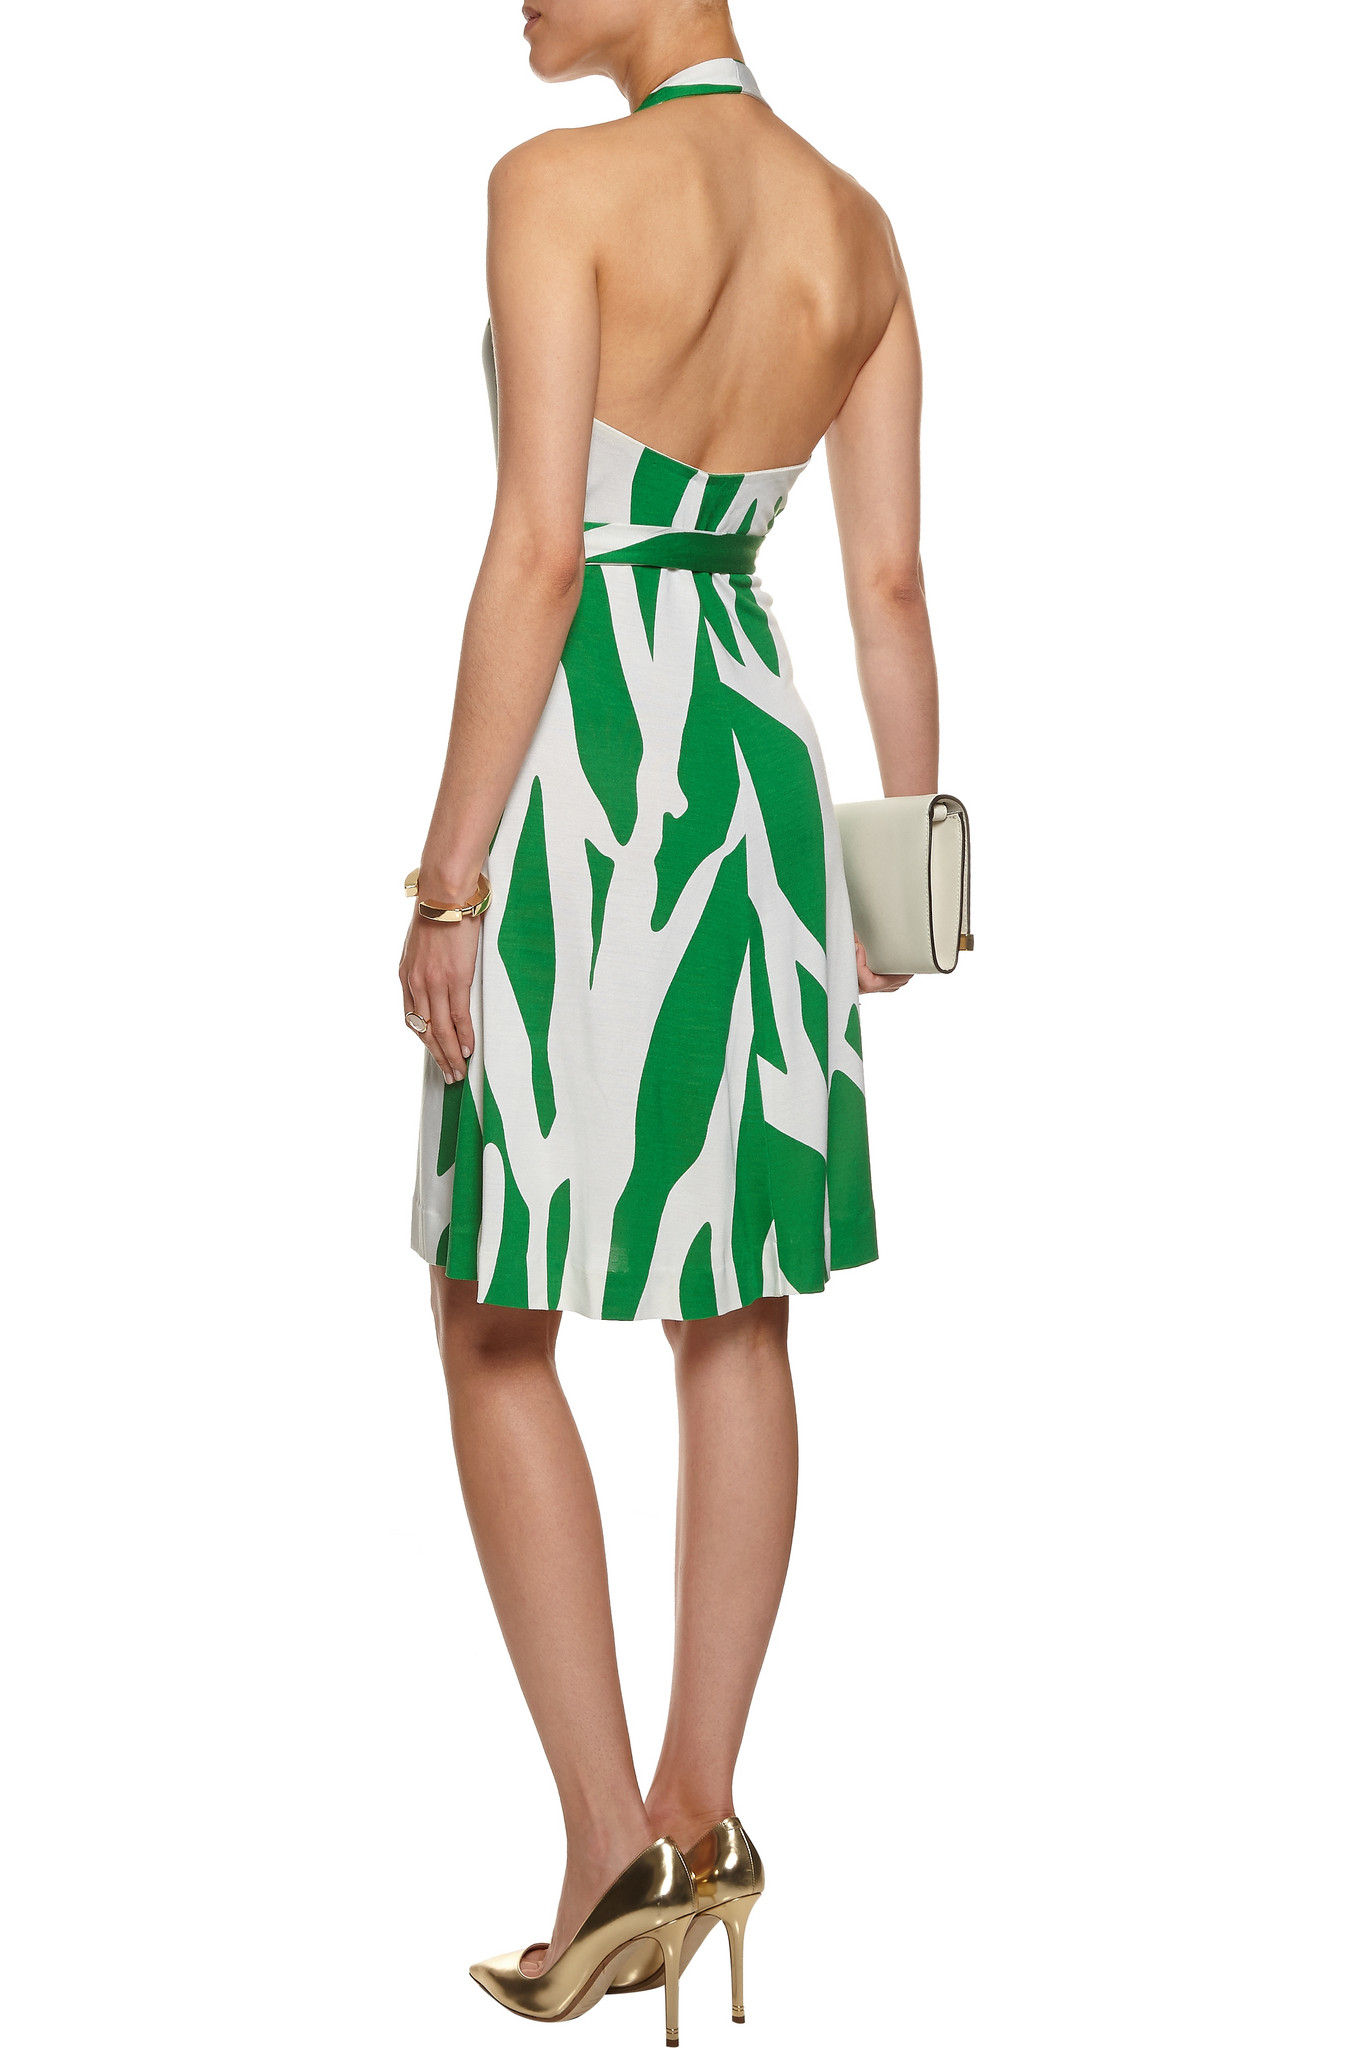 Introducing a stunning collection of wrap dresses for this season. From chic black or red styles to dressed-down jersey and checks, embrace the trend from day to night. The stylish wrap front dress design, in both short and long sleeve, looks flattering worn with classic court shoes or everyday flats.